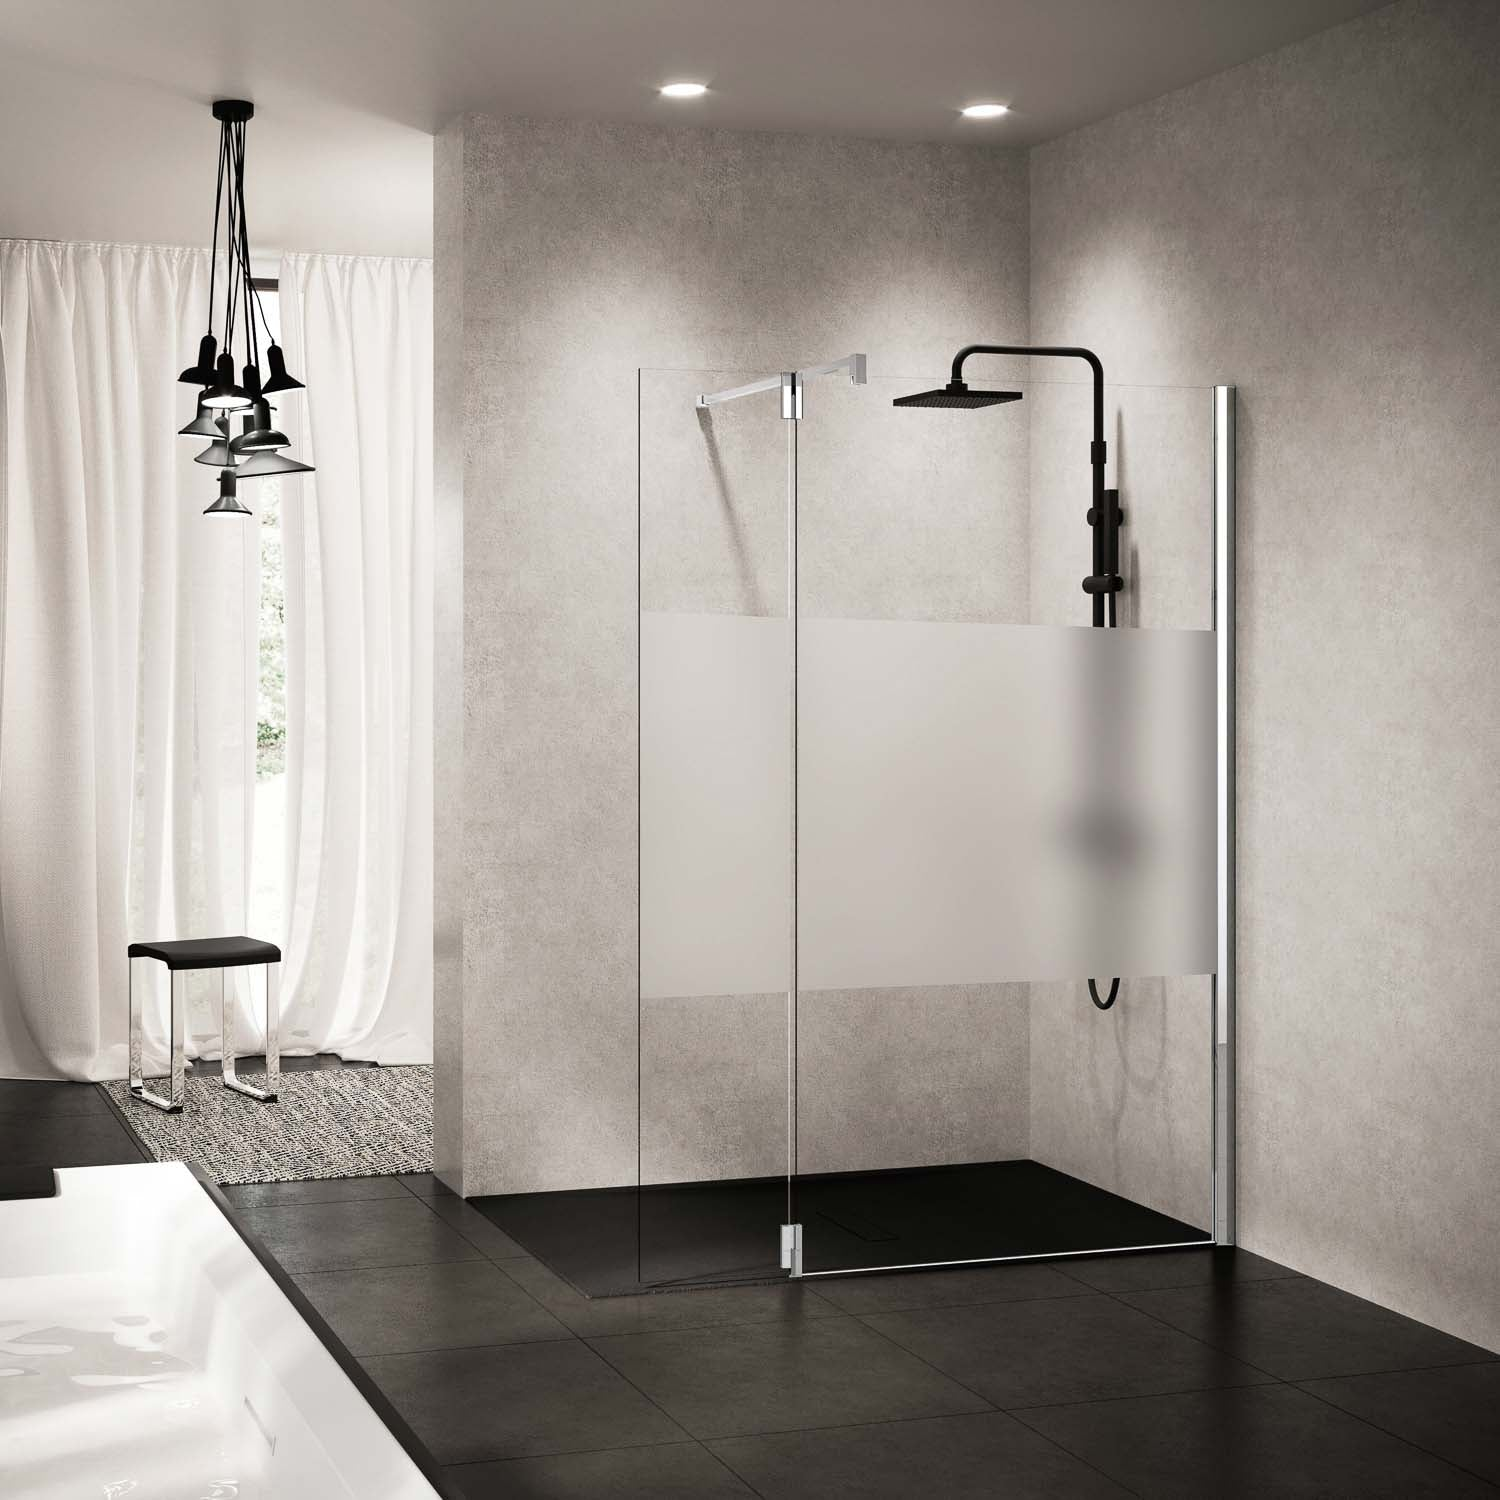 Left side 370mm Ergo Wet Room Deflector Panel Satin Band Glass with a chrome finish lifestyle image